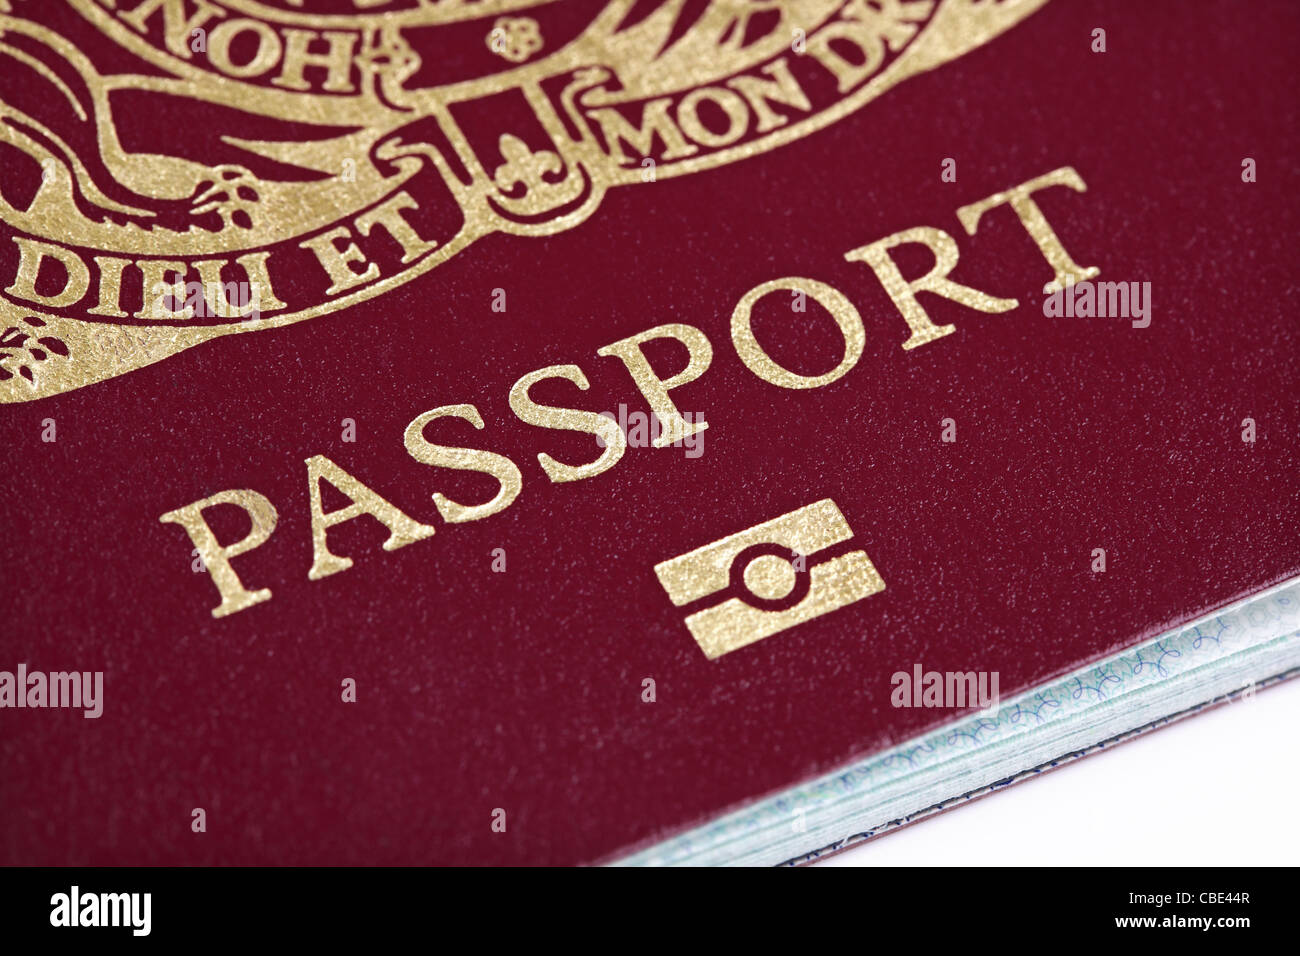 UK passport - Stock Image